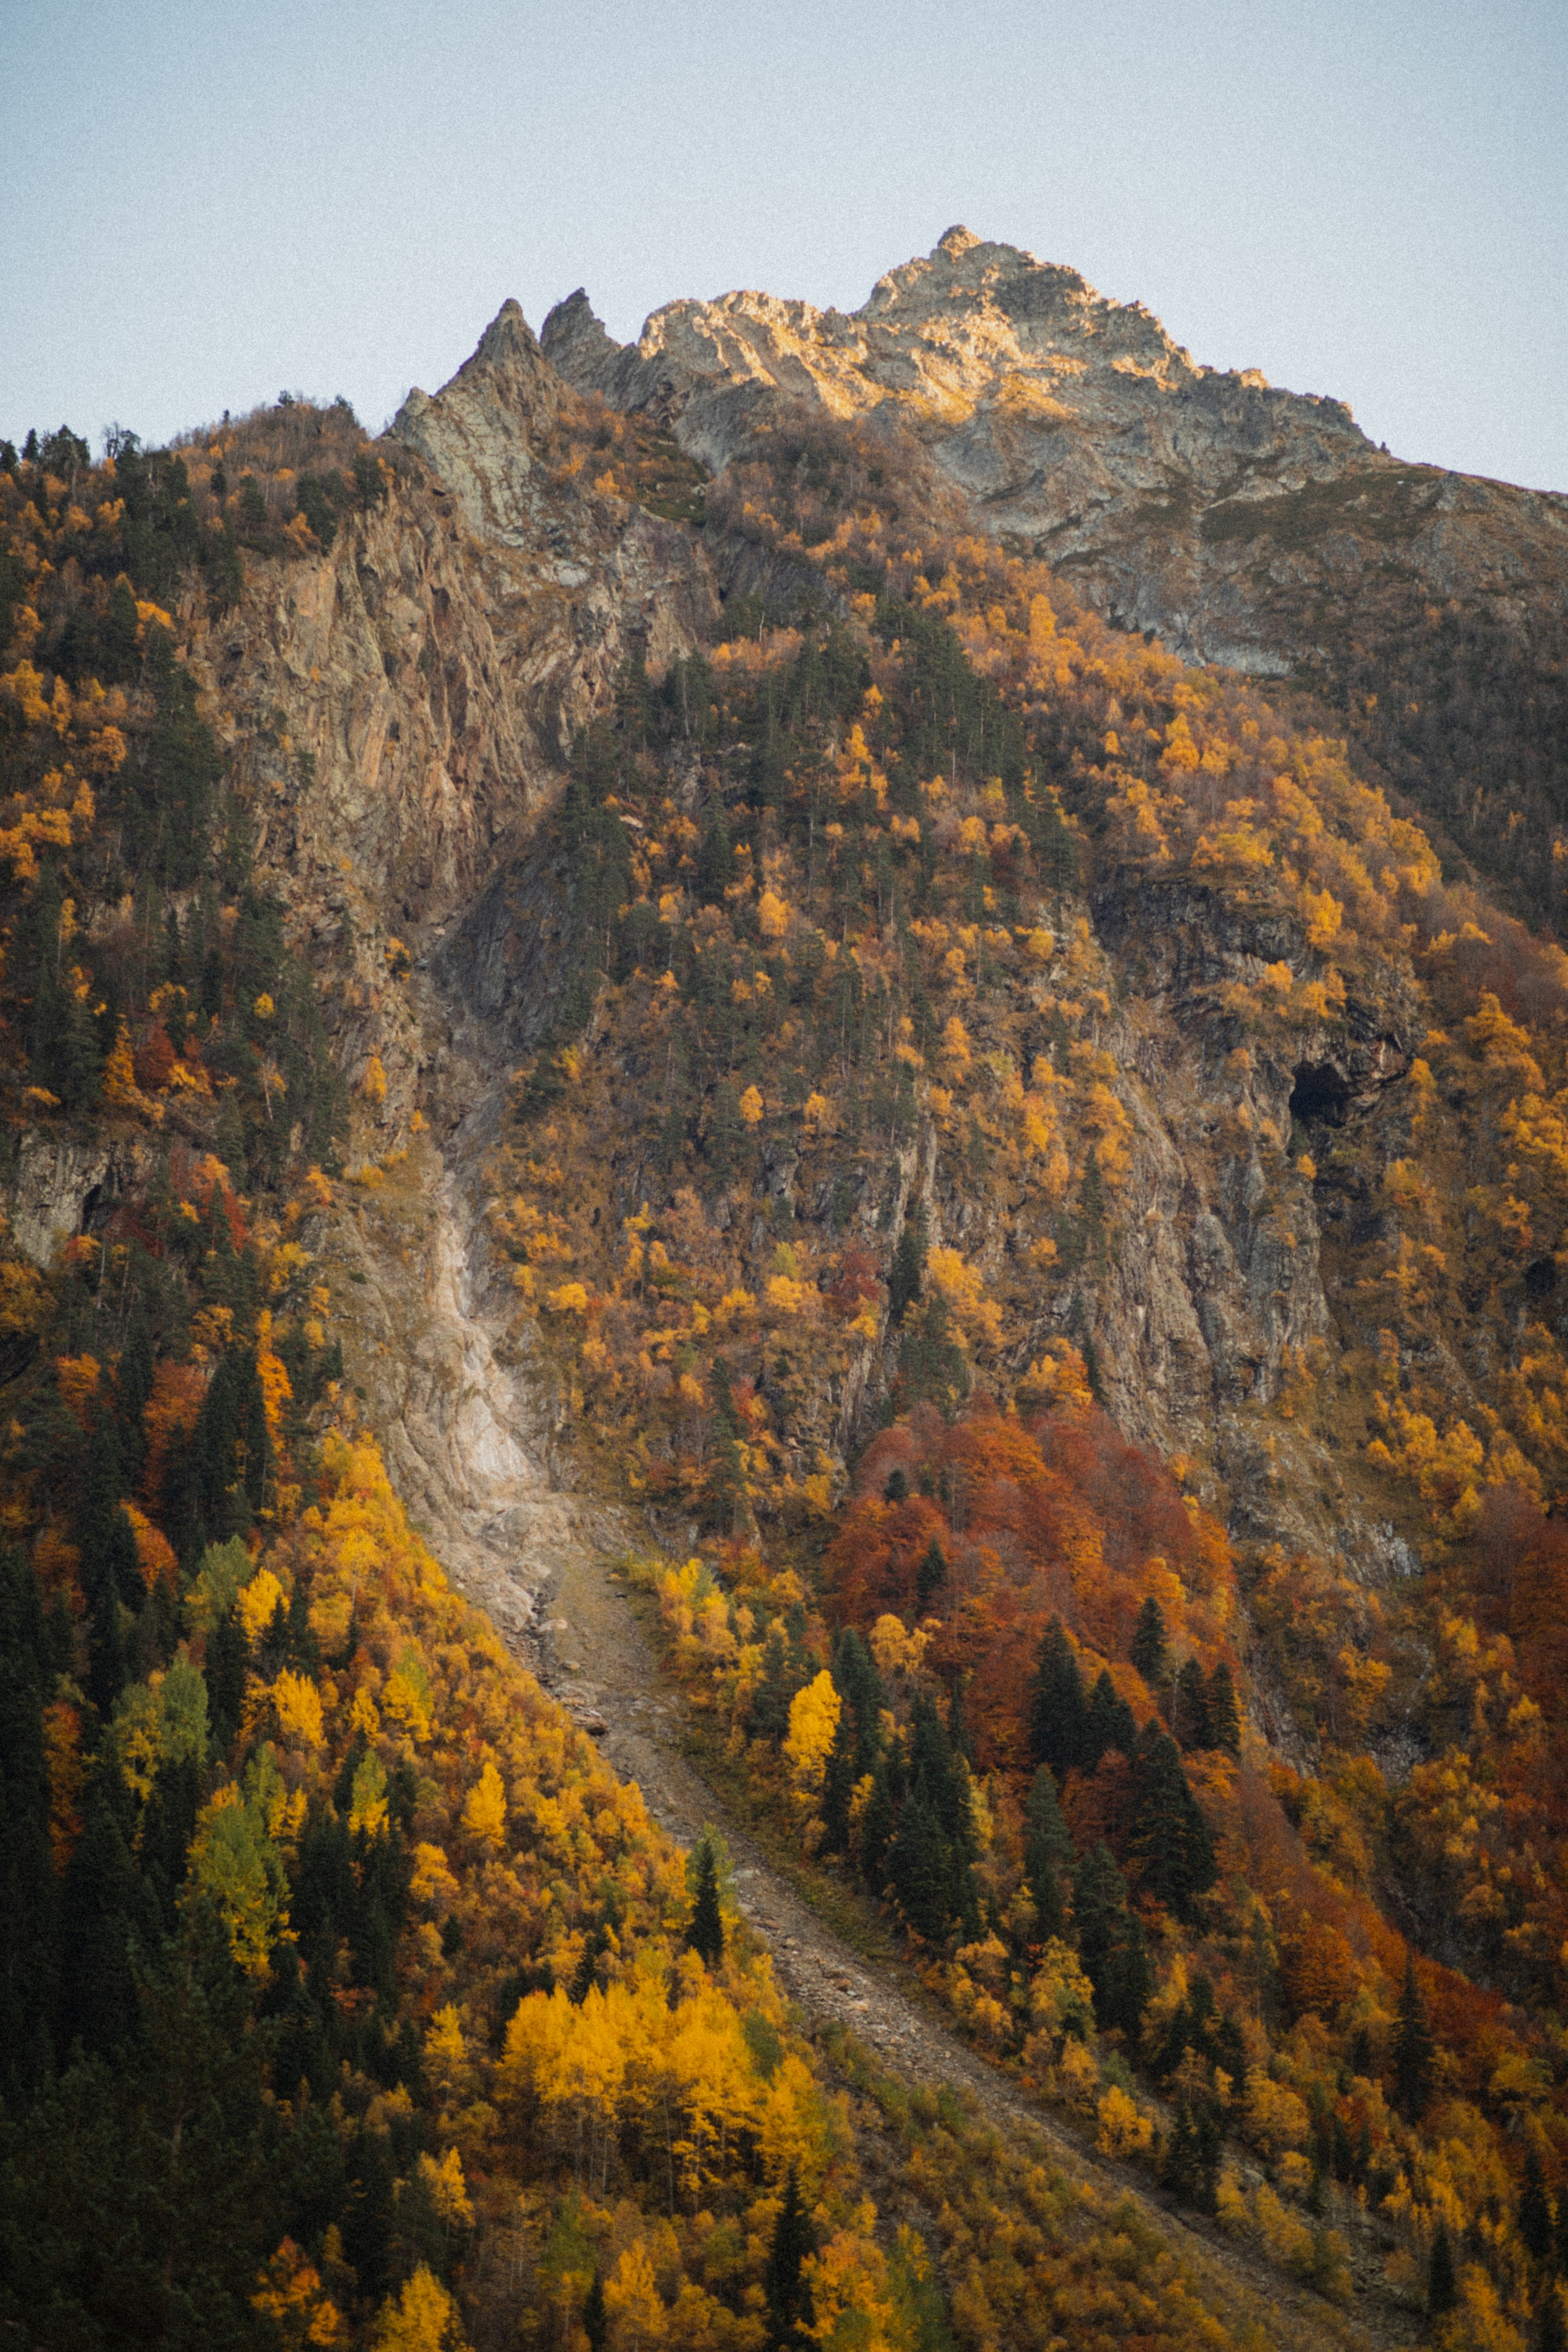 143063 download wallpaper Nature, Rocks, Path, Trees, Slope, Autumn screensavers and pictures for free